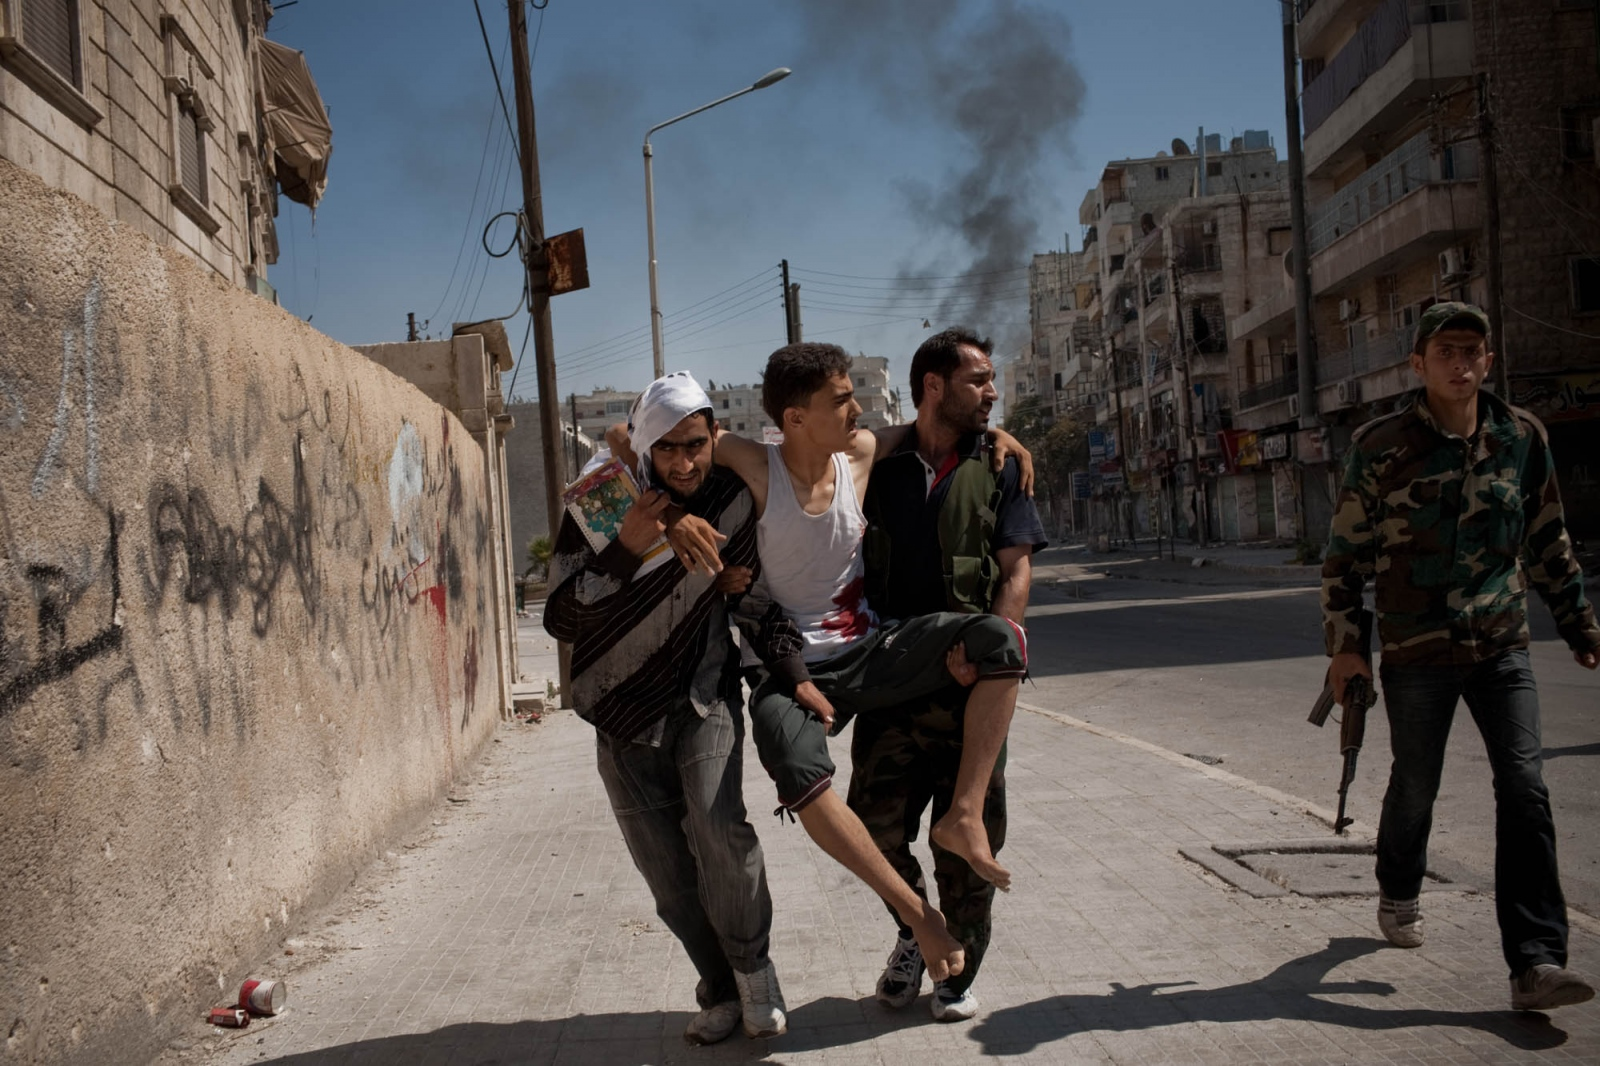 Fighters with the Free Syrian Army carry an injured civilian to a field clinic following heavy shelling in the Salaheddine neighborhood of Aleppo, Syria, on August 3, 2012.